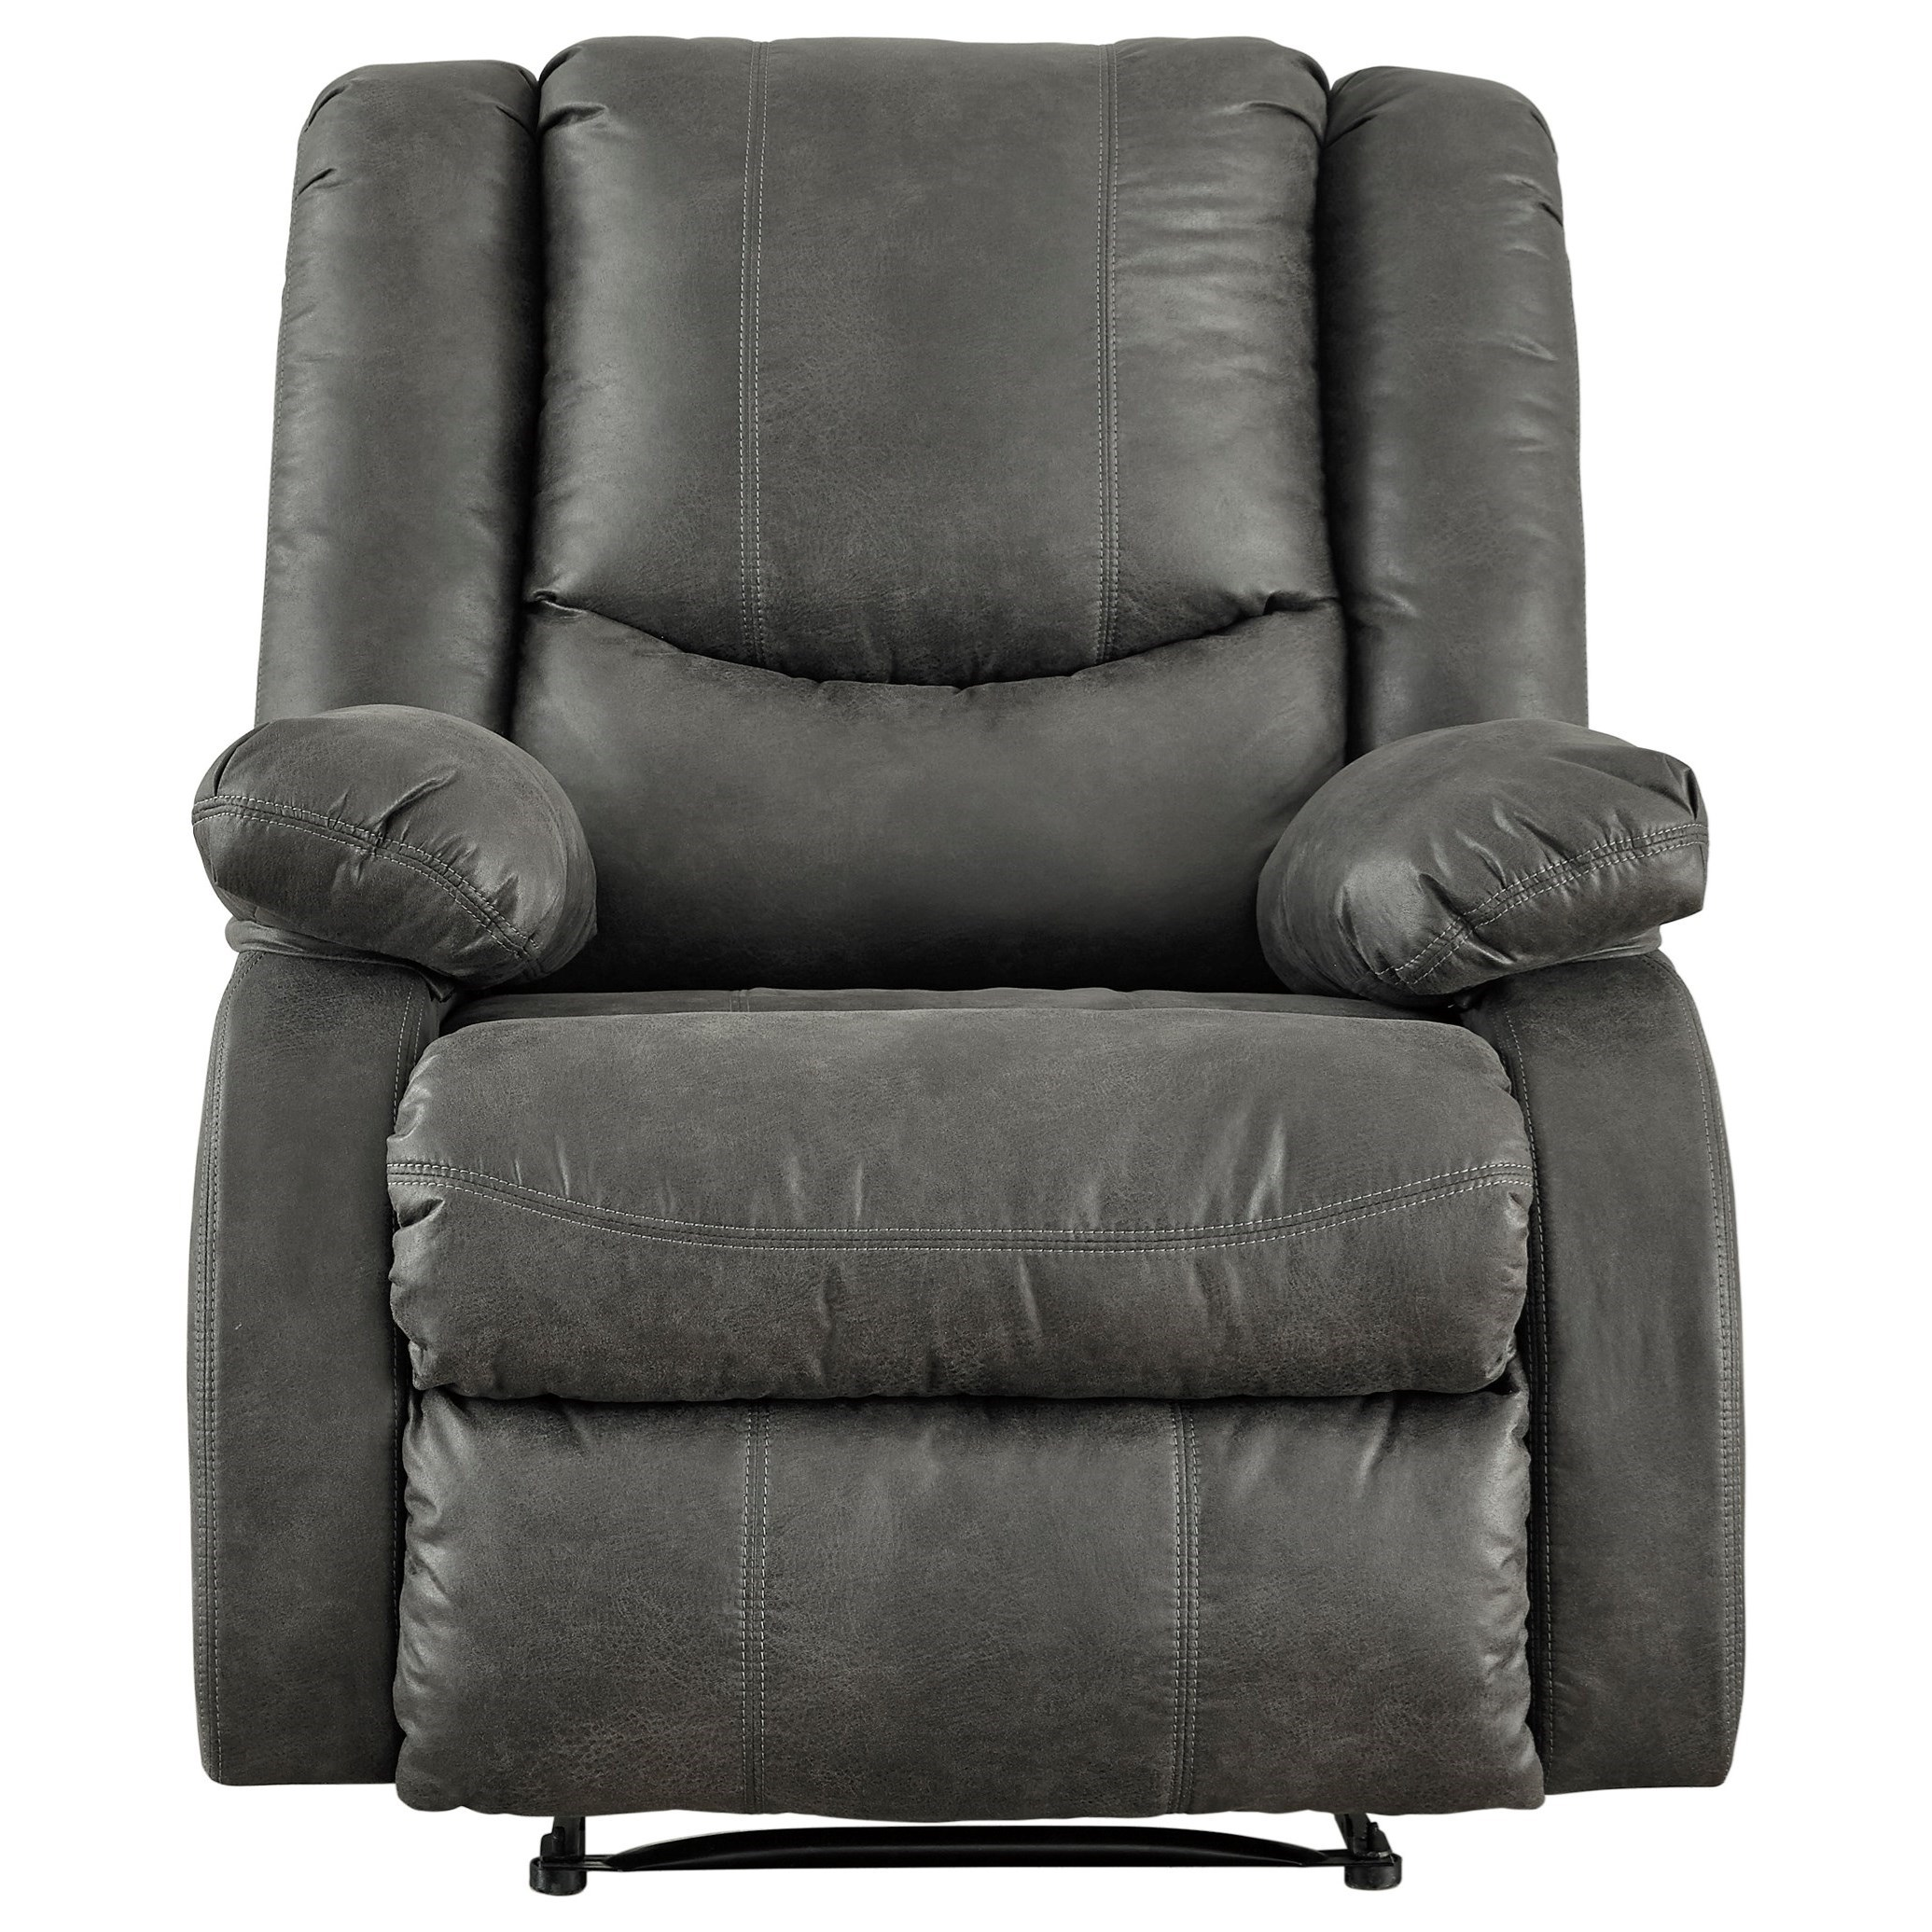 Bladewood Zero Wall Recliner by Signature Design by Ashley at Catalog Outlet